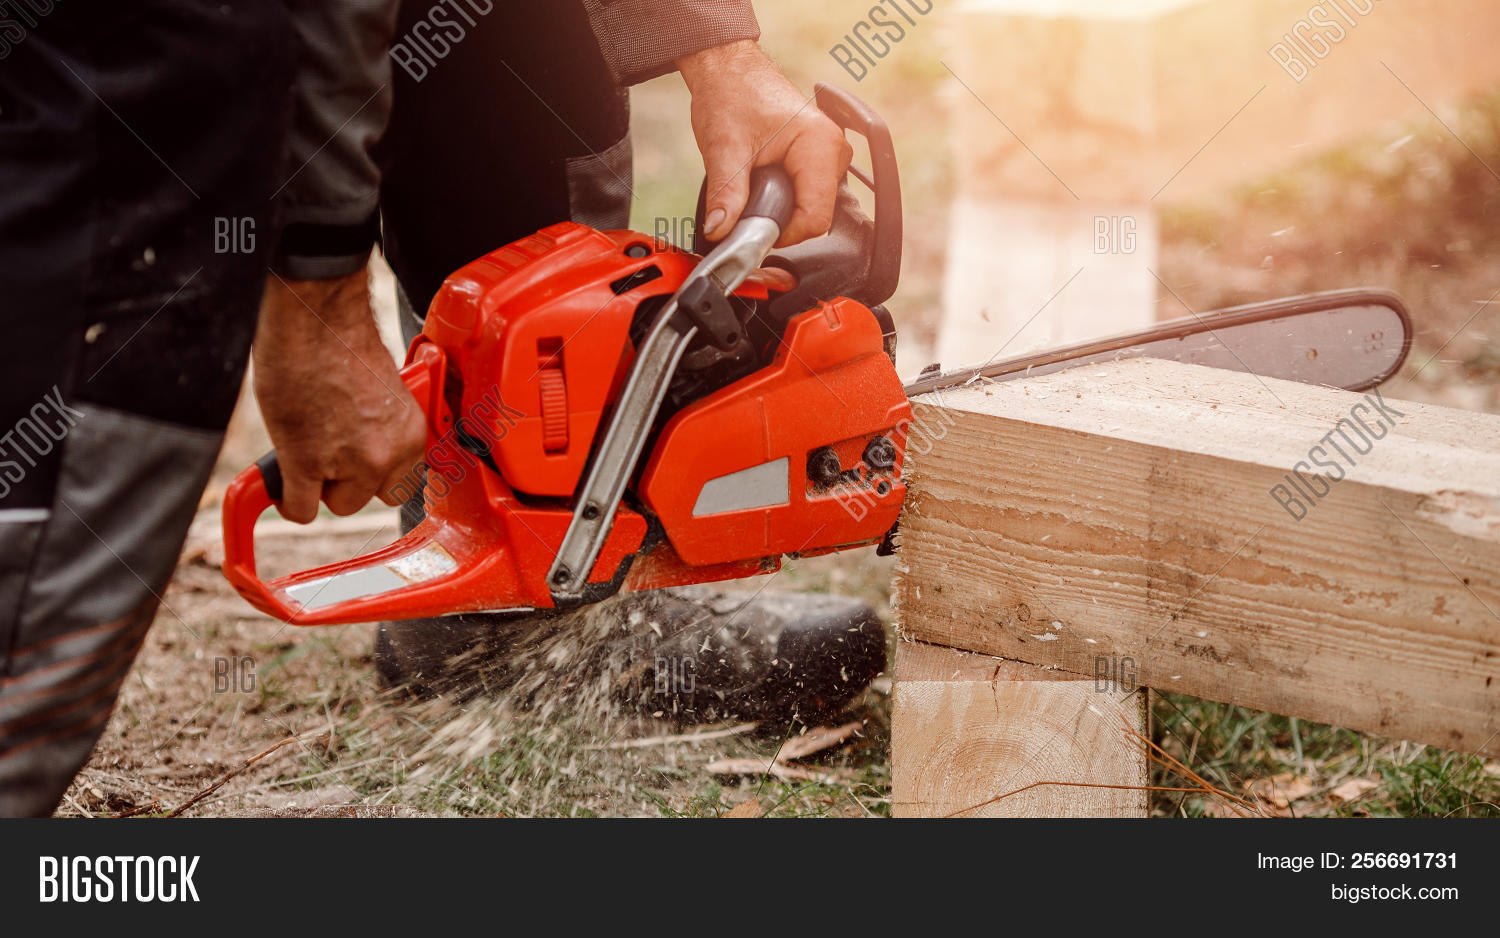 action,adult,arborist,axe,axeman,banner,beard,blade,brown,builder,building,chain,chainsaw,climber,craftsmanship,cut,cutting,dust,electric,equipment,feller,felling,firewood,forest,hand,handyman,helmet,house,human,industrial,industry,job,log,lumberjack,lumberman,machine,man,outdoors,pine,power,professional,saw,timber,tool,tree,wood,woodsman,work,worker,workwear